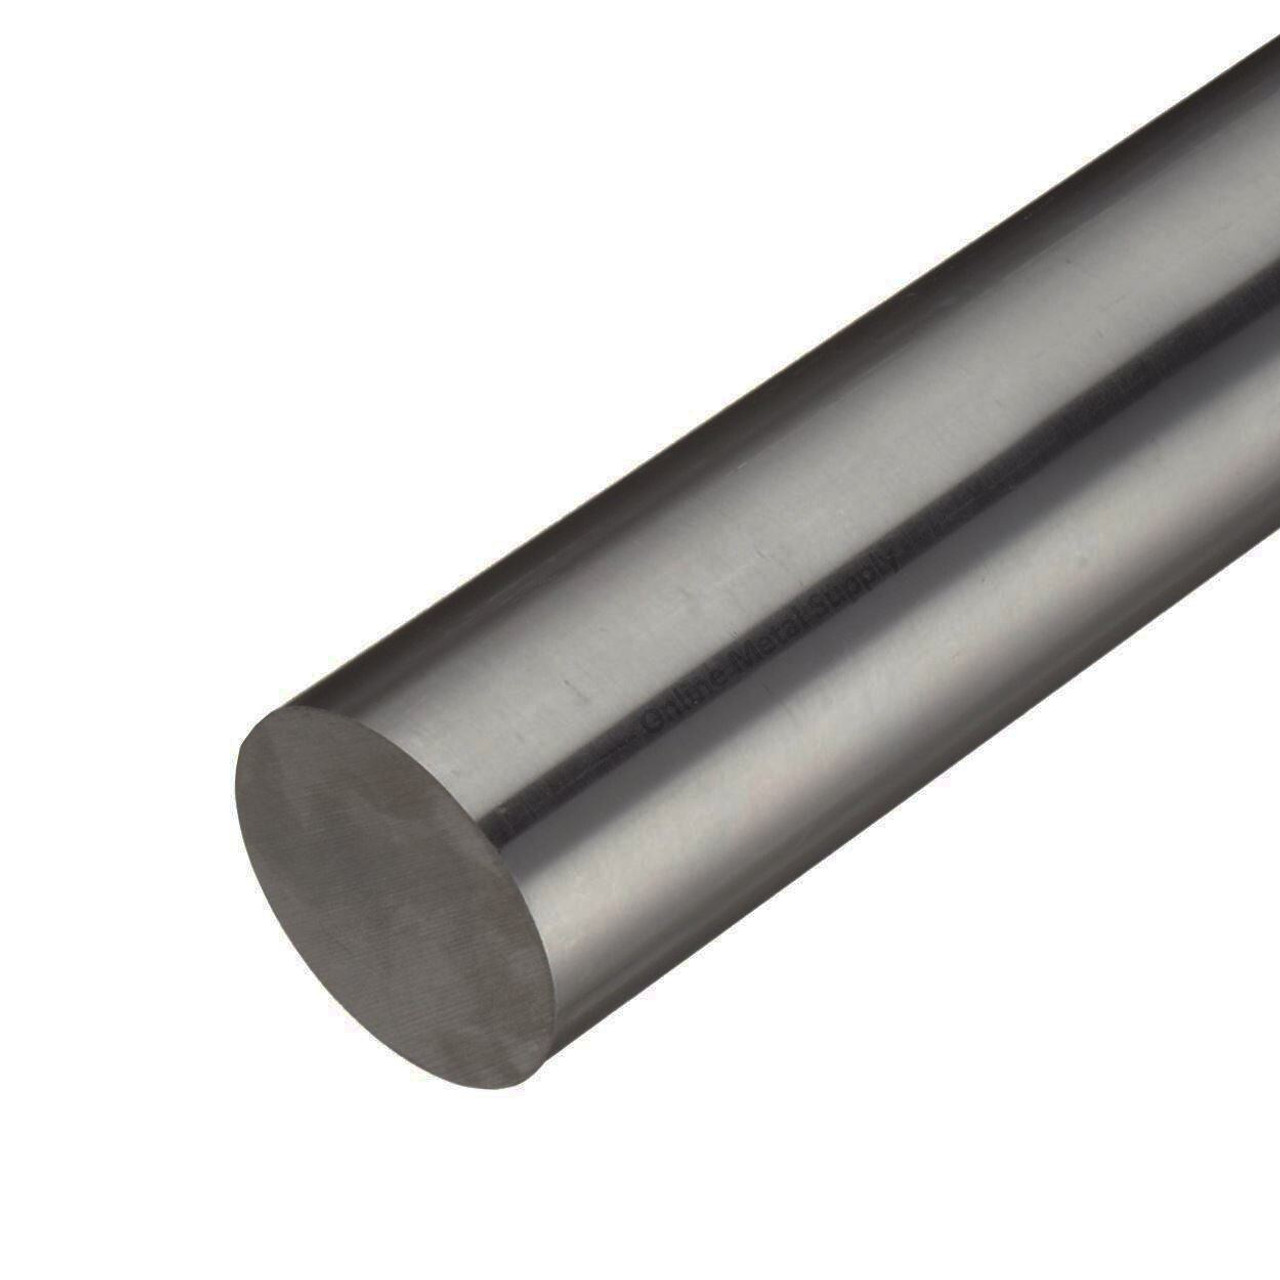 "361 Molybdenum Round Rod, 0.375"" x 26.5"" long"